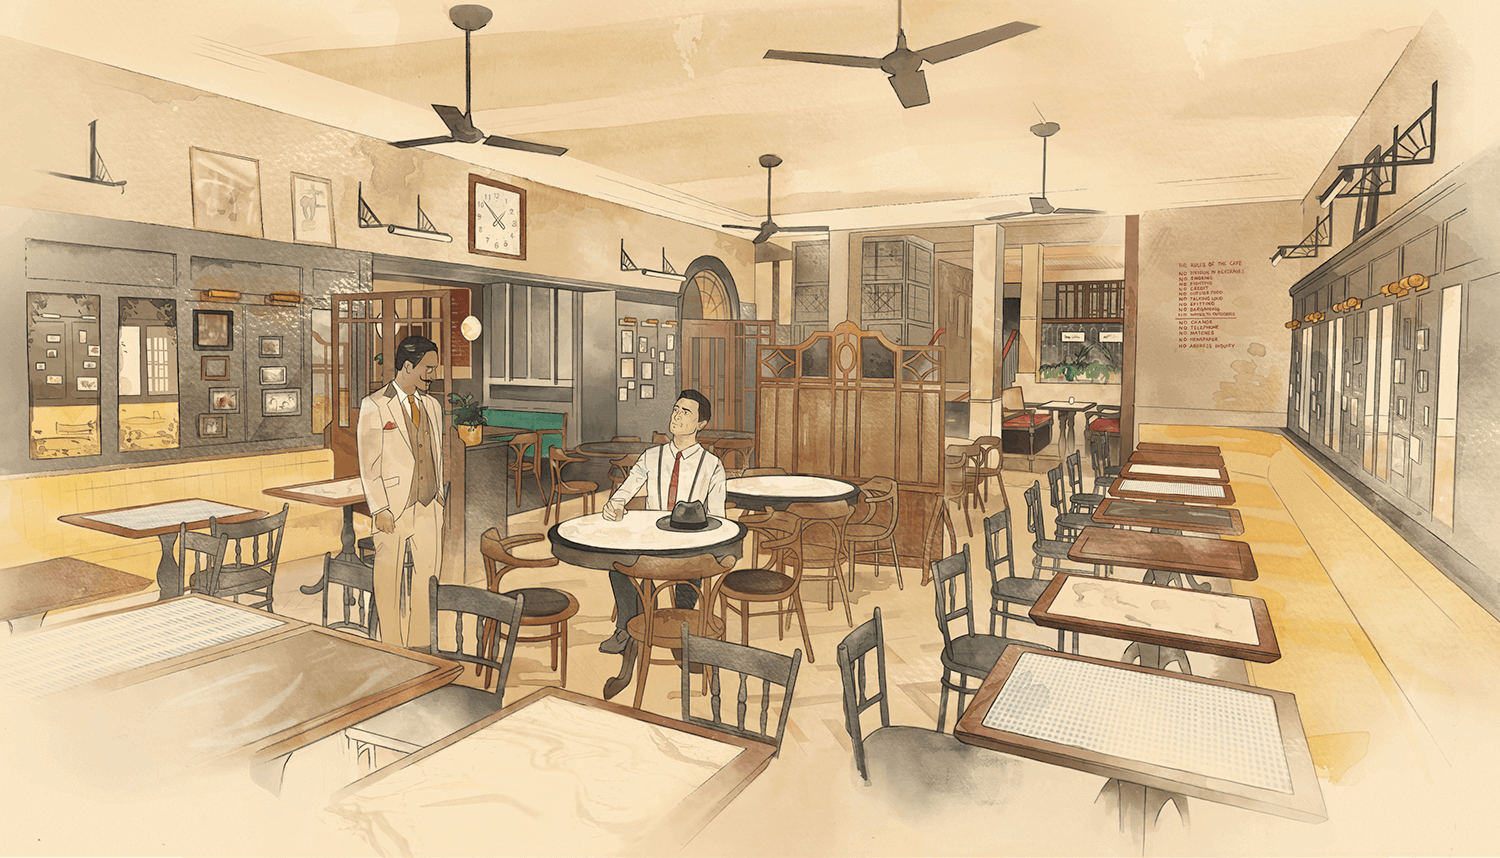 Watercolour and digital illustration of Dishoom Restaurant by Edinburgh Illustrator Sheree Walker